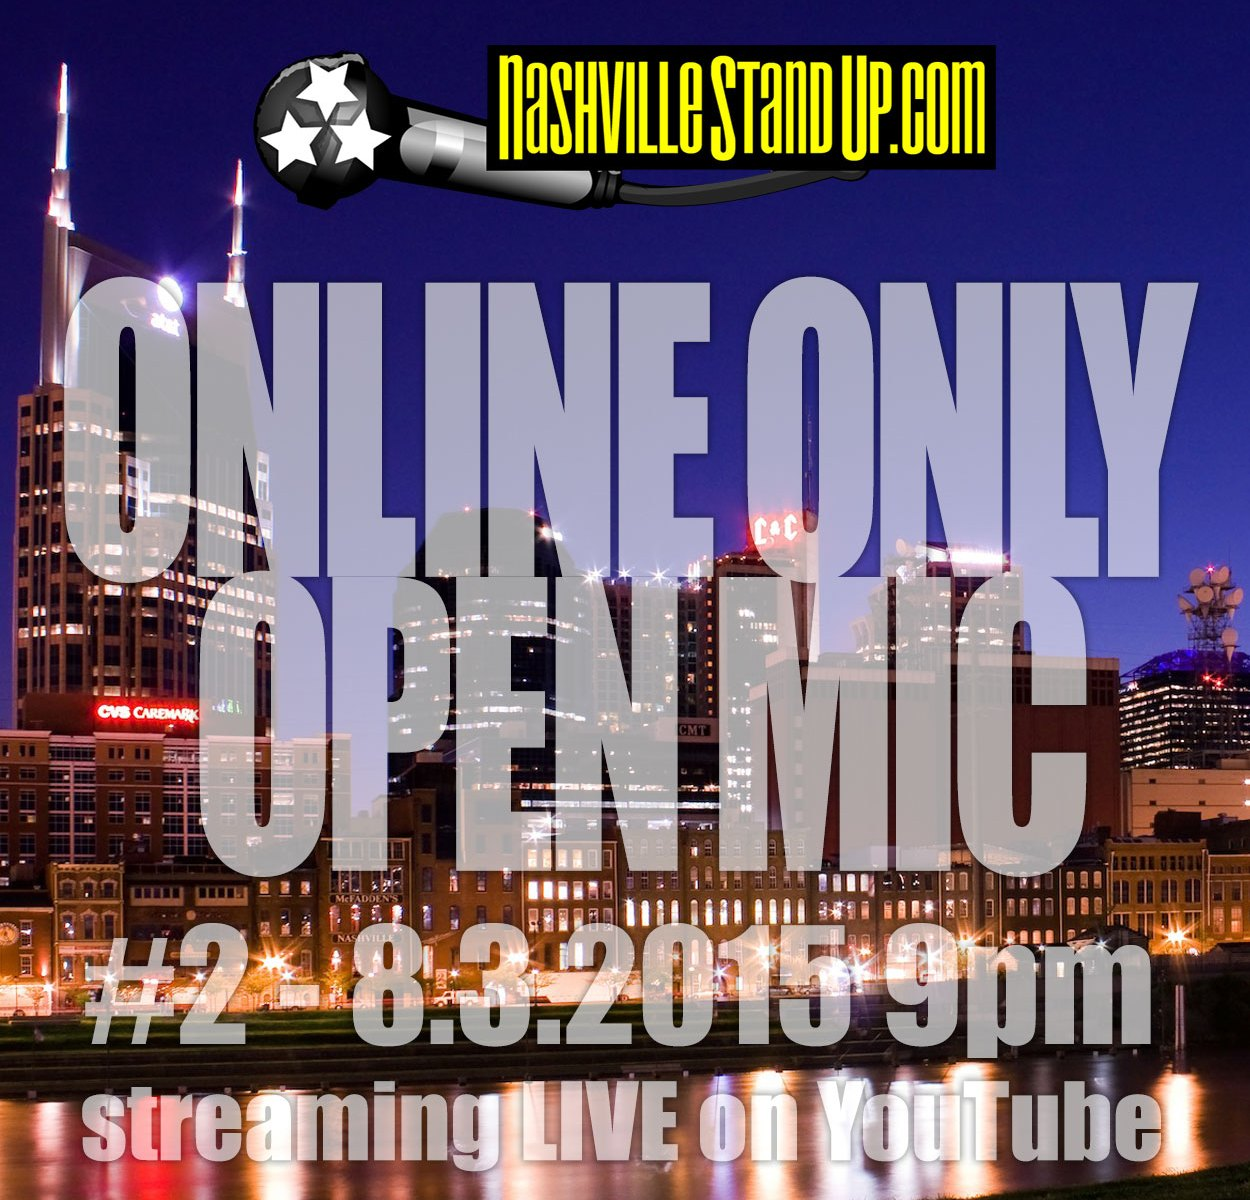 ONLINE ONLY OPEN MIC #2 - 8.3.2015 - hosted by Chad Riden & Mary Jay Berger. SIGN UP AT 9, SHOW AT 9:30 Central. streaming LIVE online on YouTube & NashvilleStandUp.com